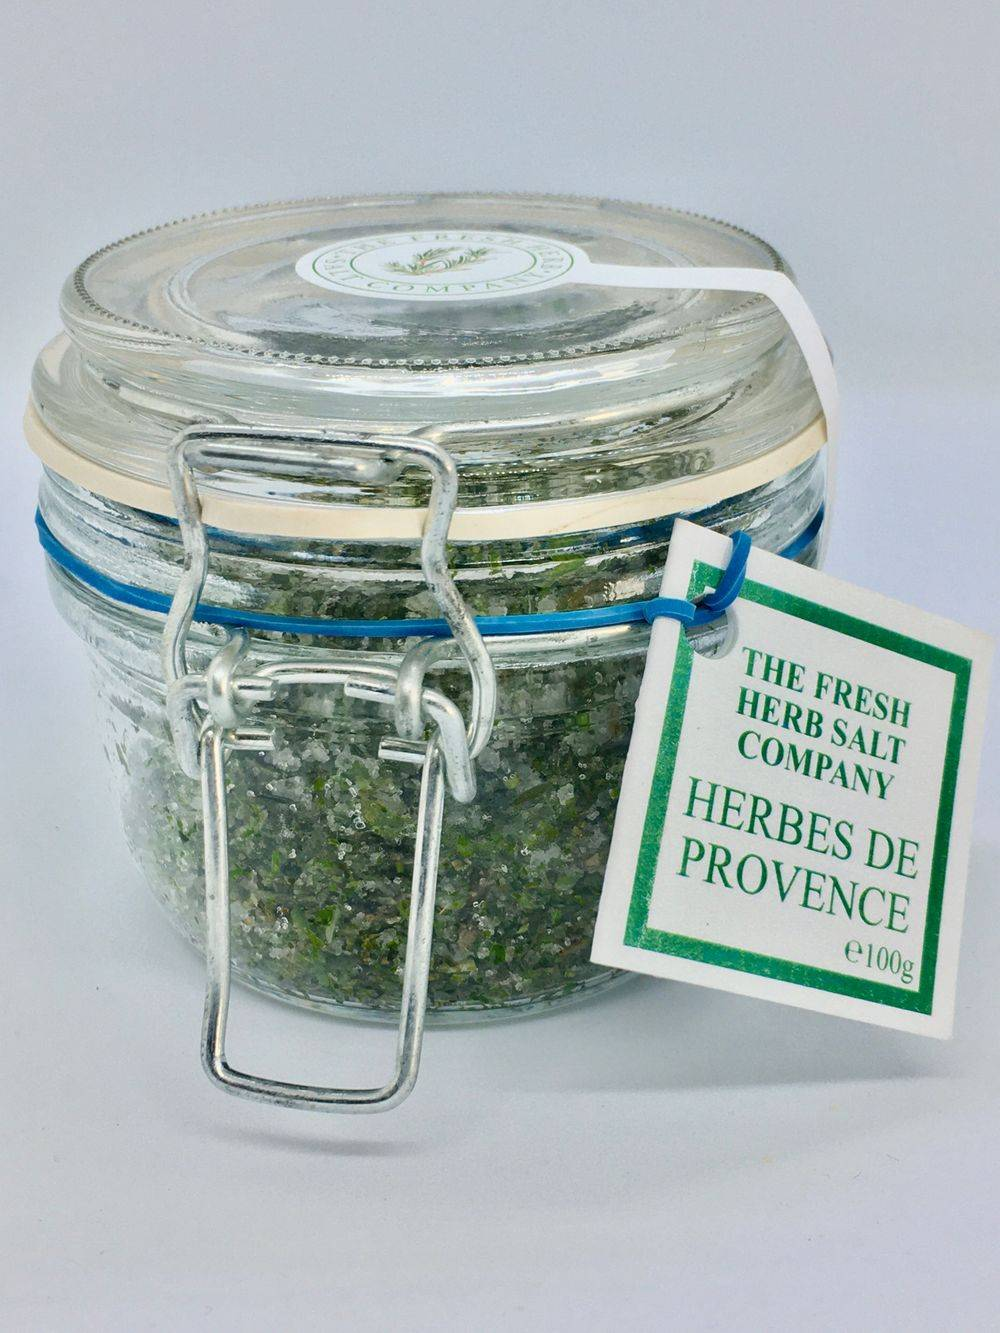 herbesdeprovence herbsalt quickrecipes easyrecipes uniquegifts staycation holidaycottages selfcatering barbeques food ethicalgiftsonline onlineshopping